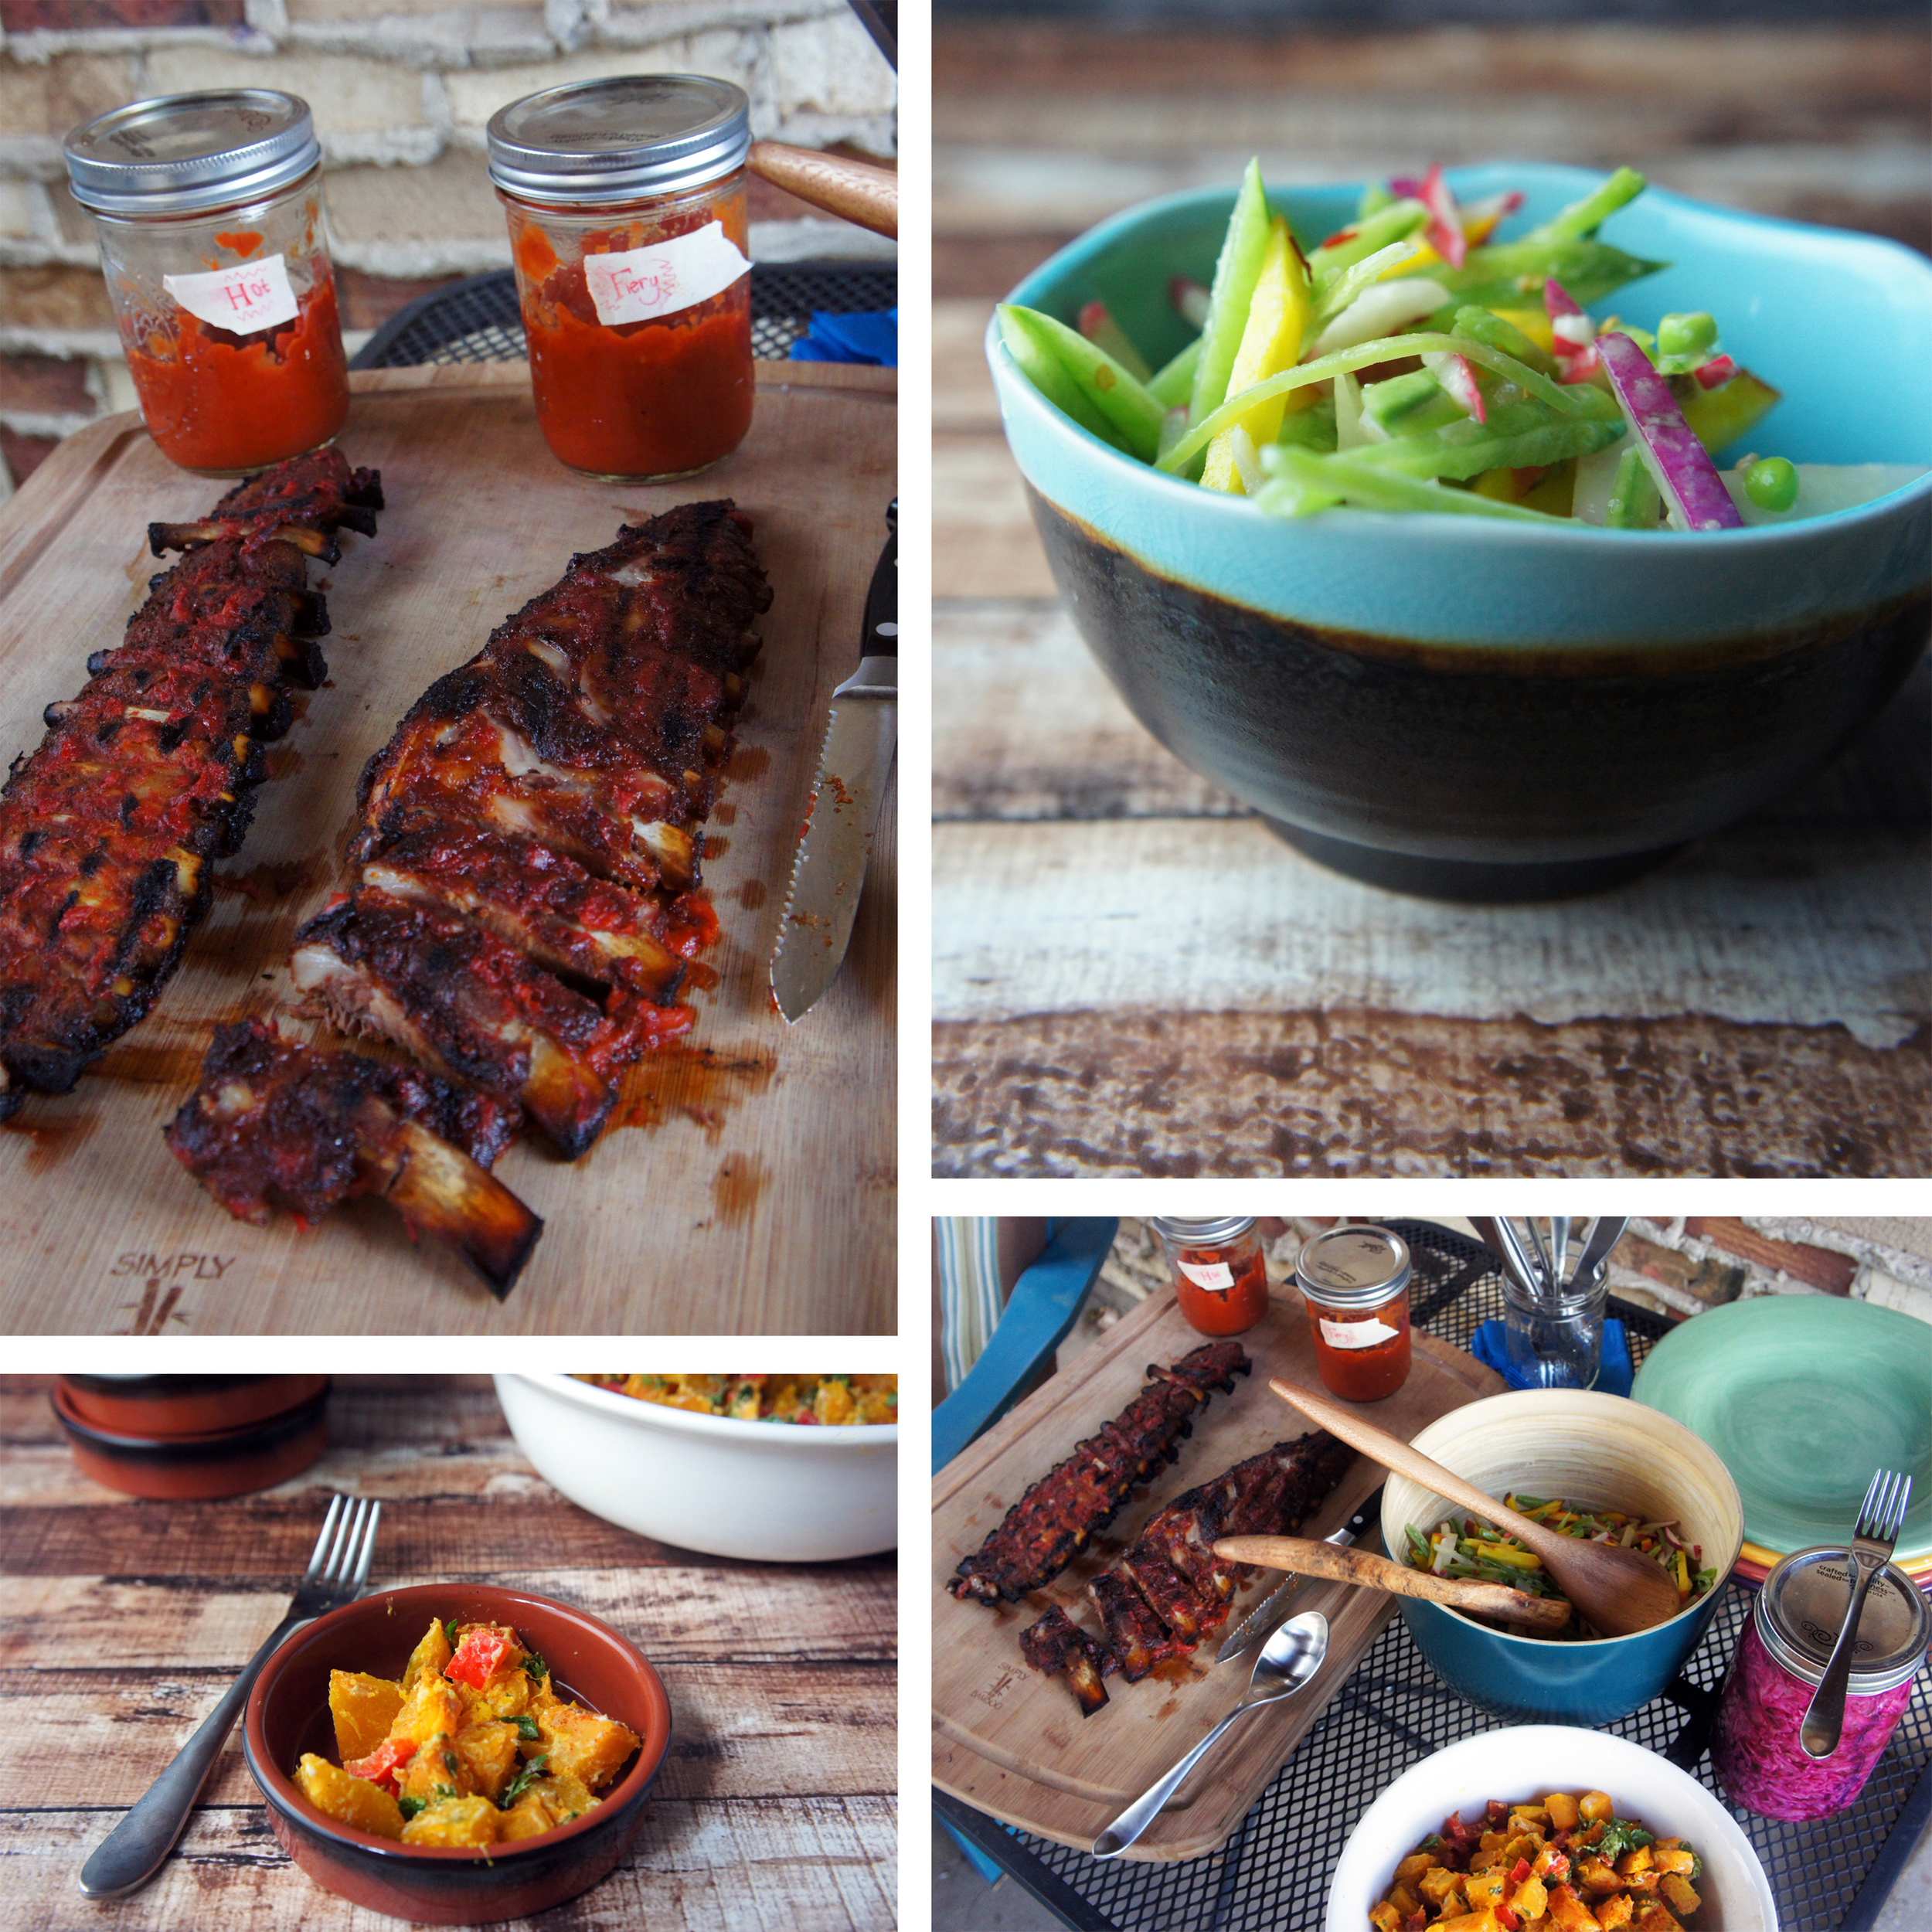 Paleo menu for outdoor party